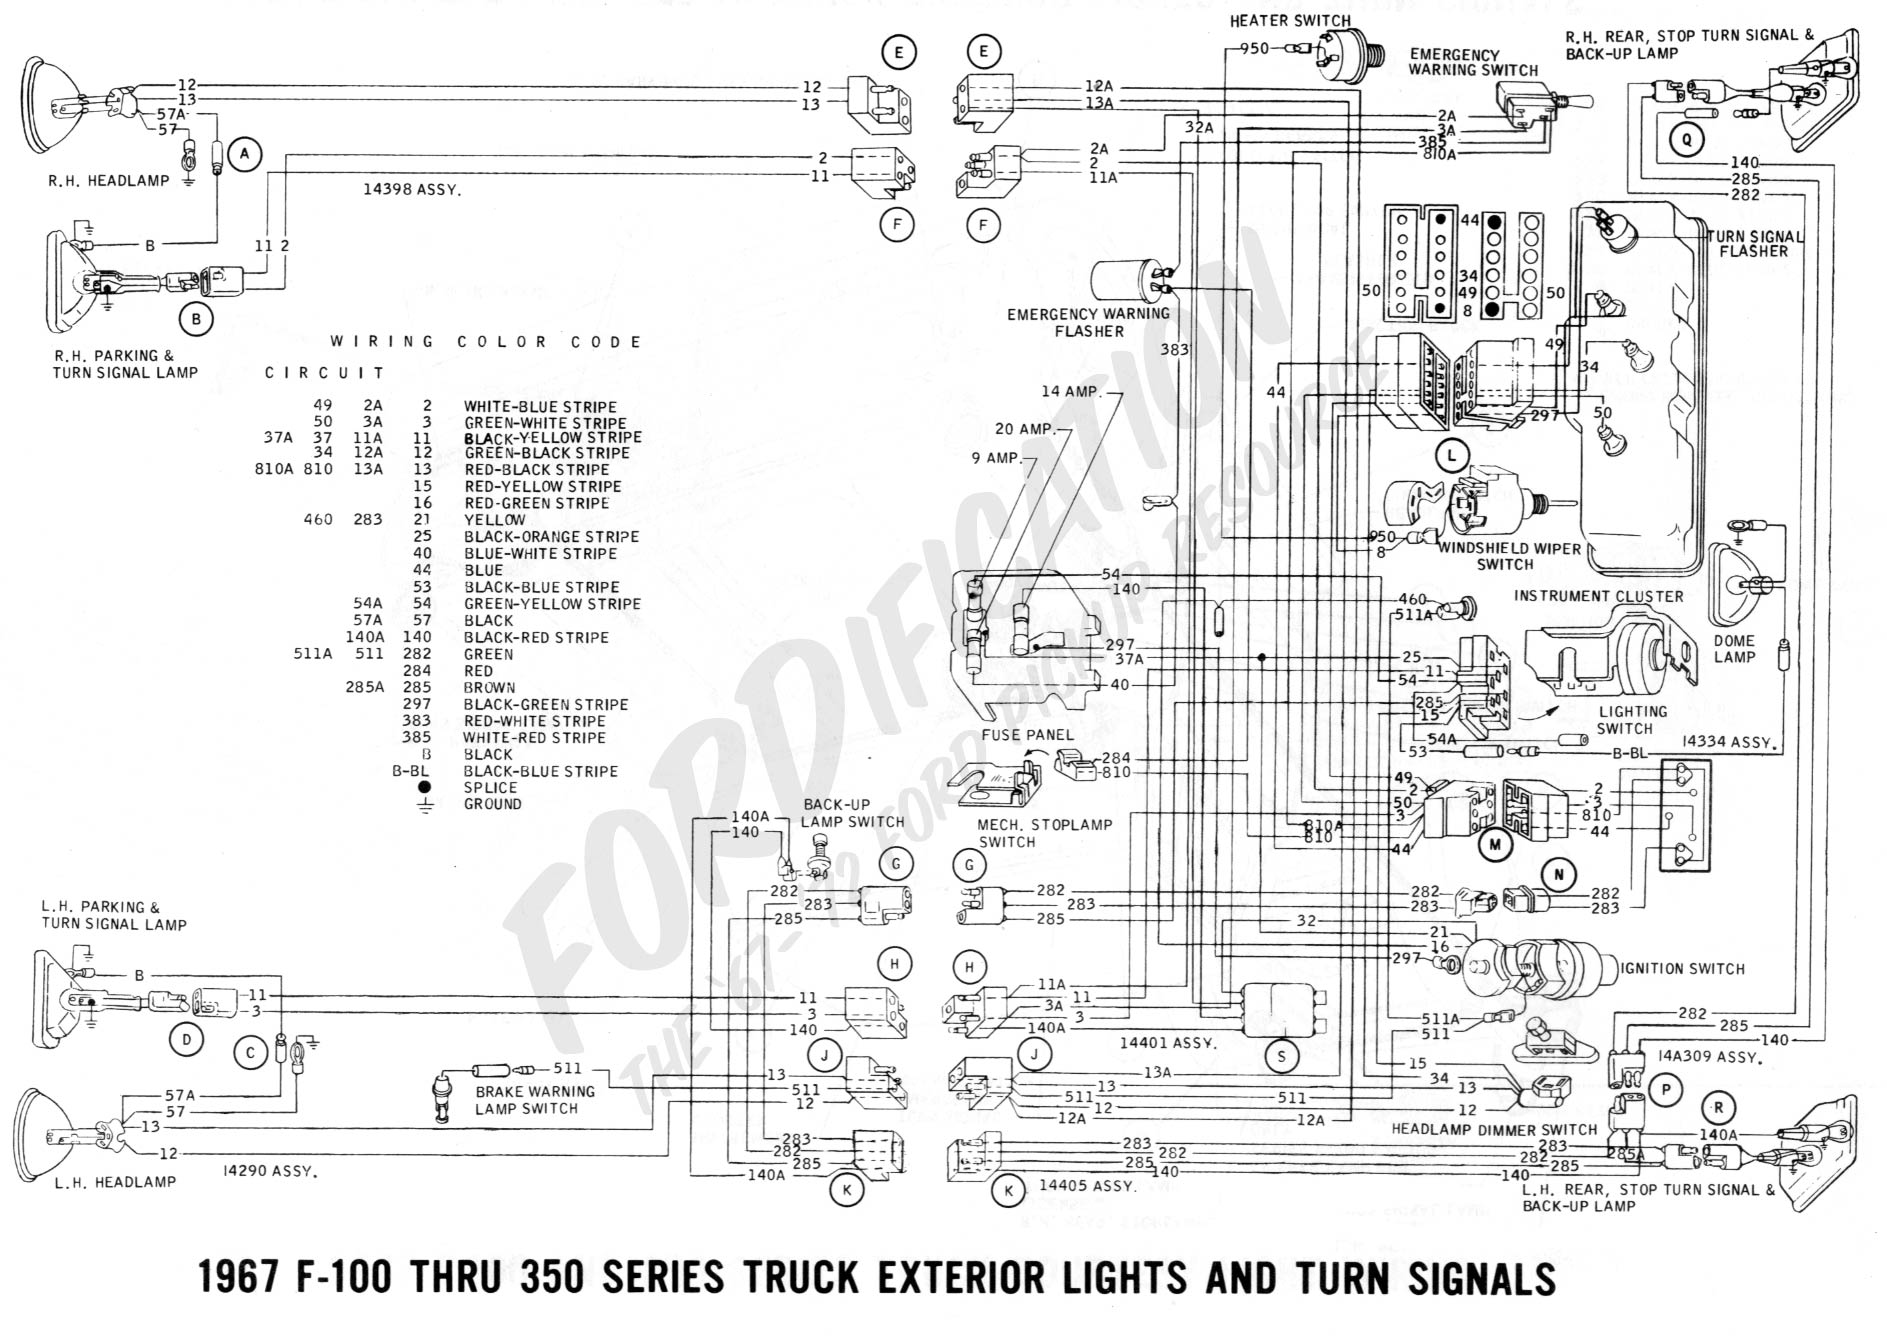 89 F150 Tachometer Wiring Reinvent Your Diagram Vdo Diesel 1989 Ford Ranger Tail Light Detailed Schematics Rh Highcliffemedicalcentre Com Chevy 350